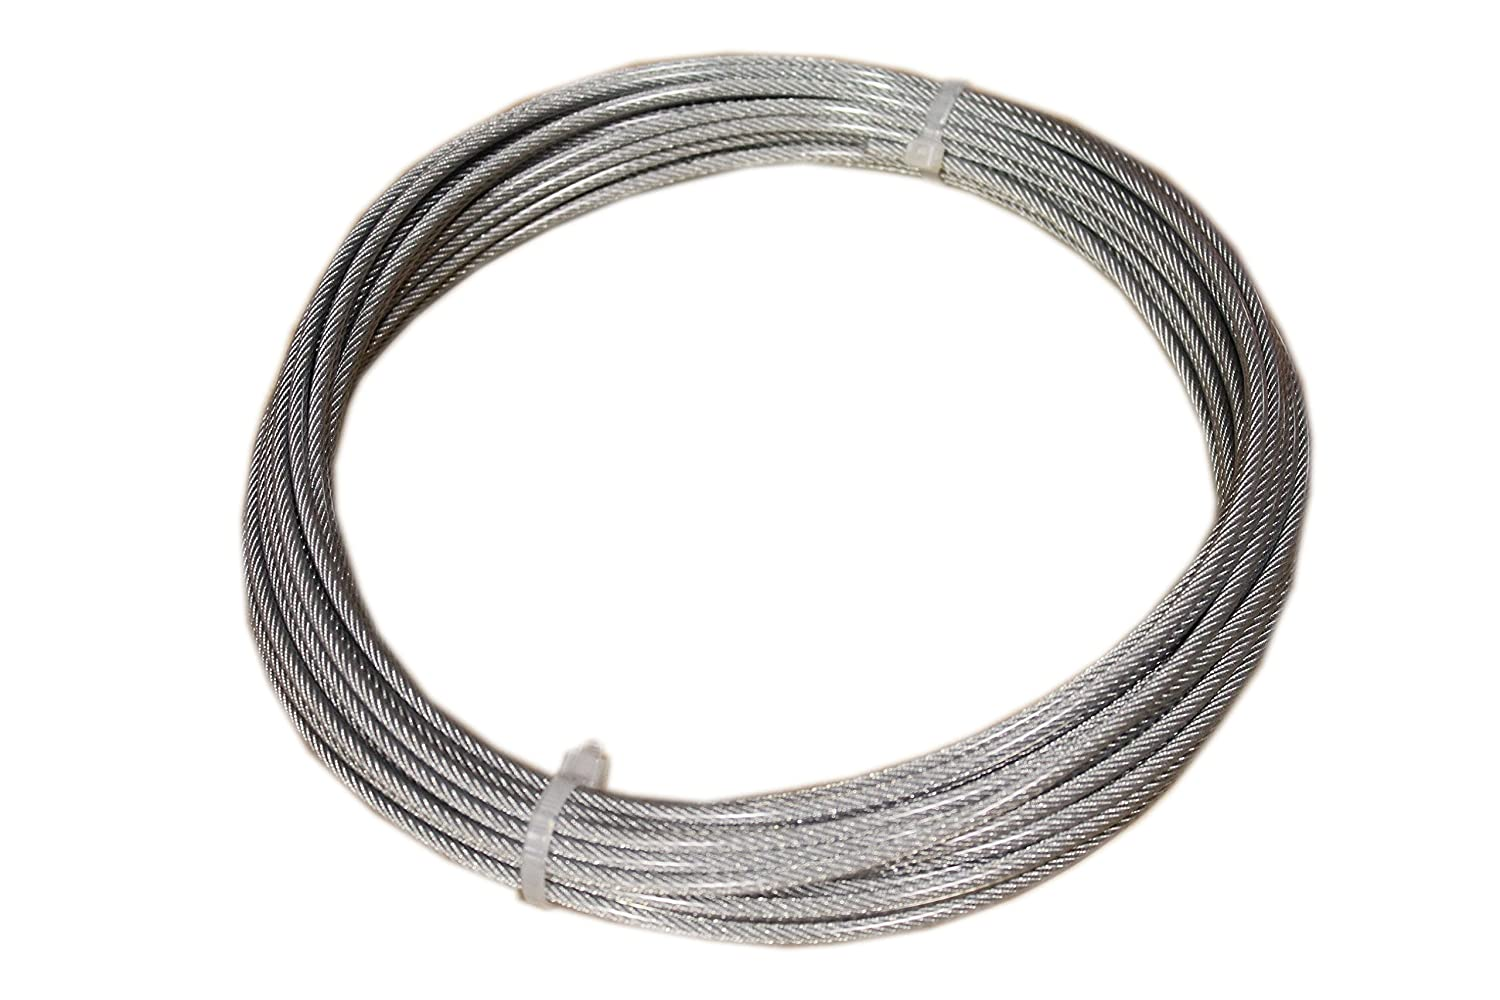 Loos Stainless Steel 302/304 Wire Rope, Vinyl Coated, 7x7 Strand ...